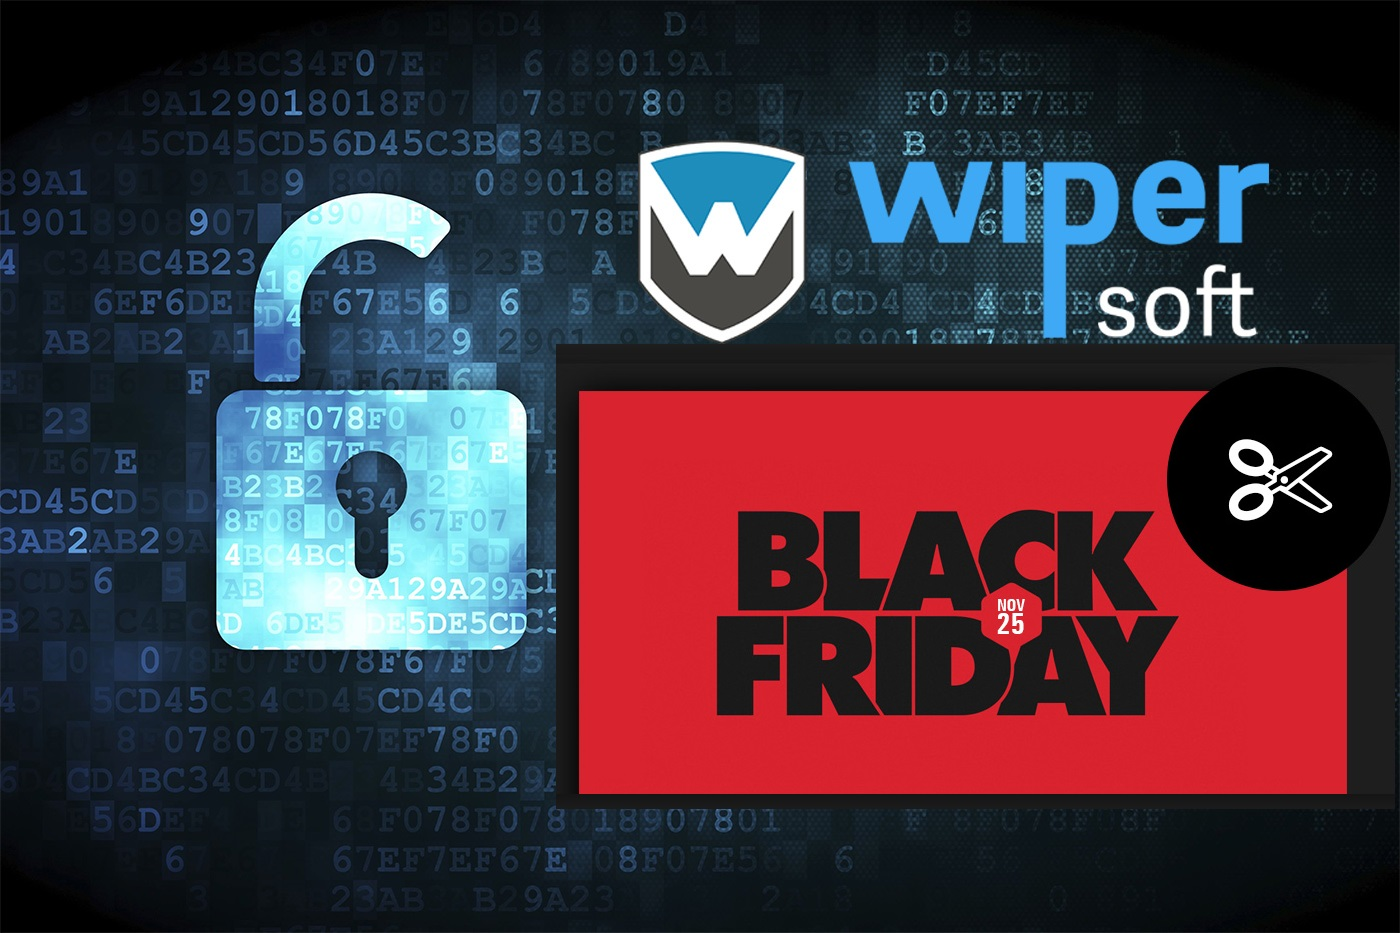 Beware of fraudulent Black Friday Cyber Monday apps